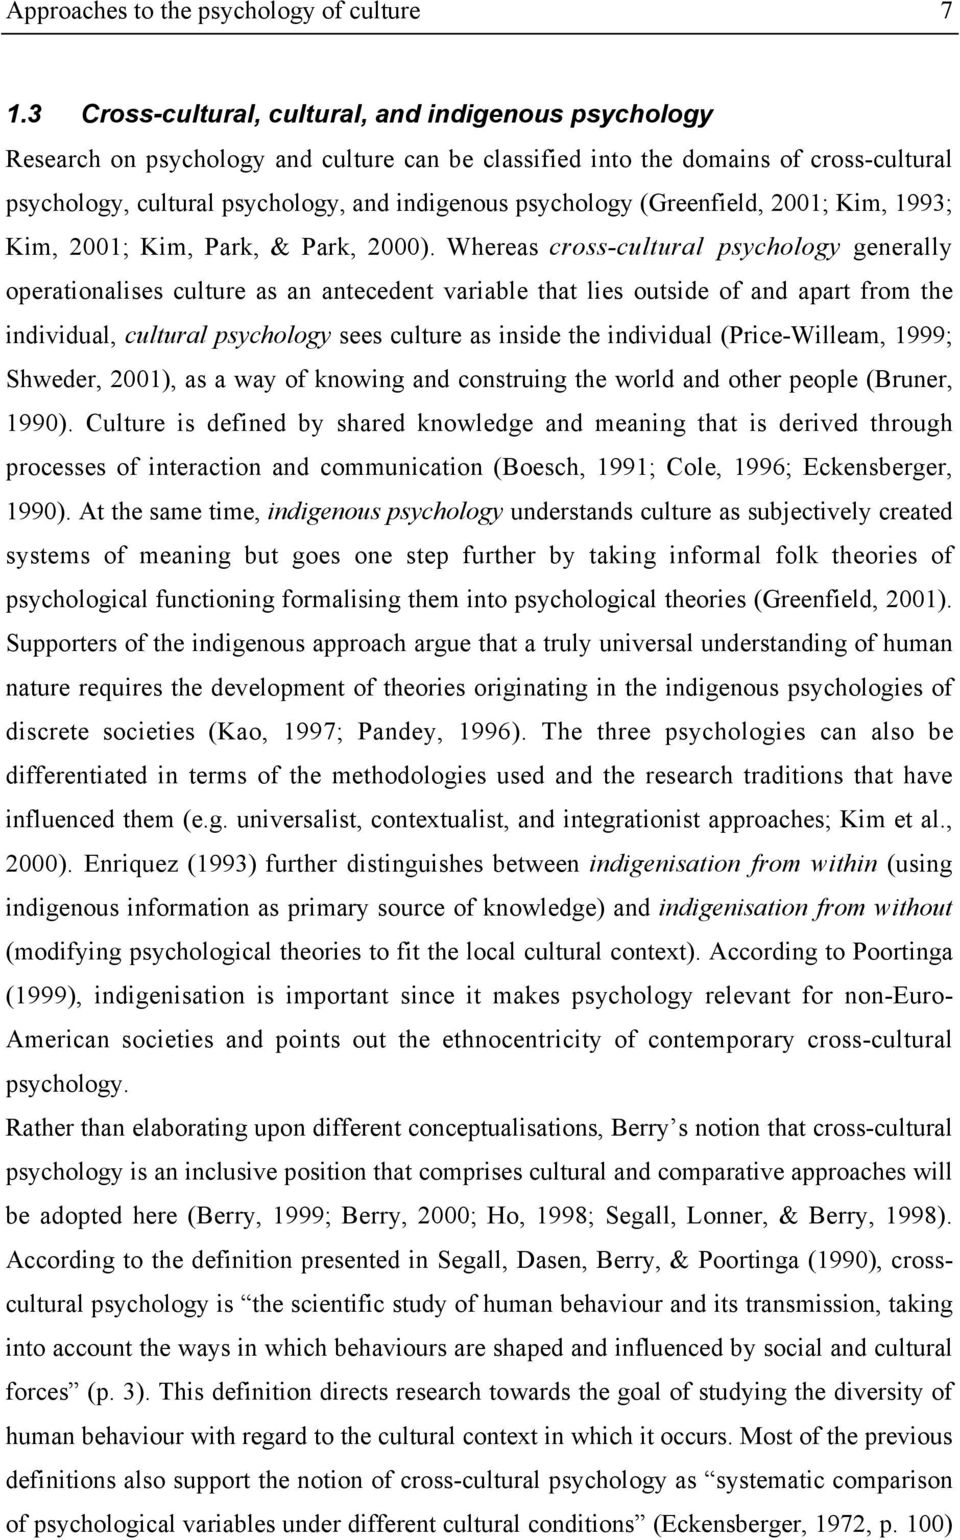 psychology (Greenfield, 2001; Kim, 1993; Kim, 2001; Kim, Park, & Park, 2000).